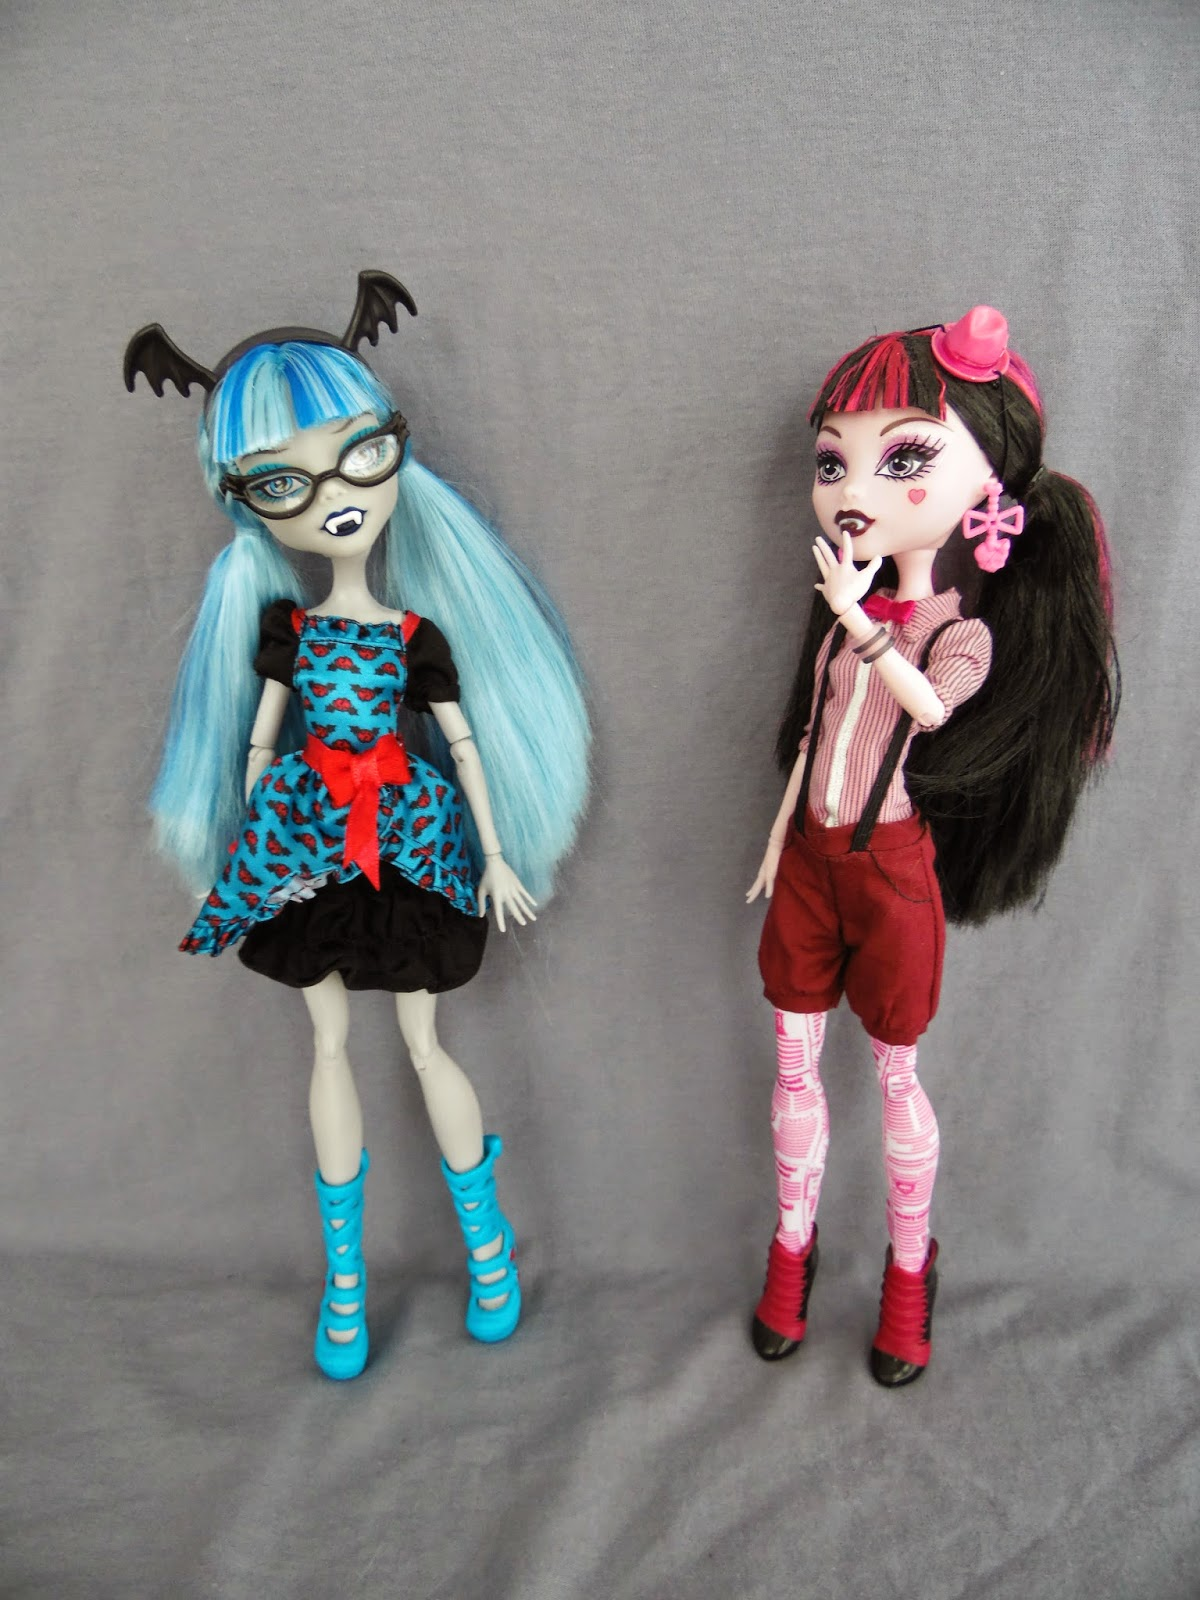 anyways without further ado lets take a closer look at ghoulia and see what draculaura thinks of ghoulias interpretation of her style - Ghoulia Yelps